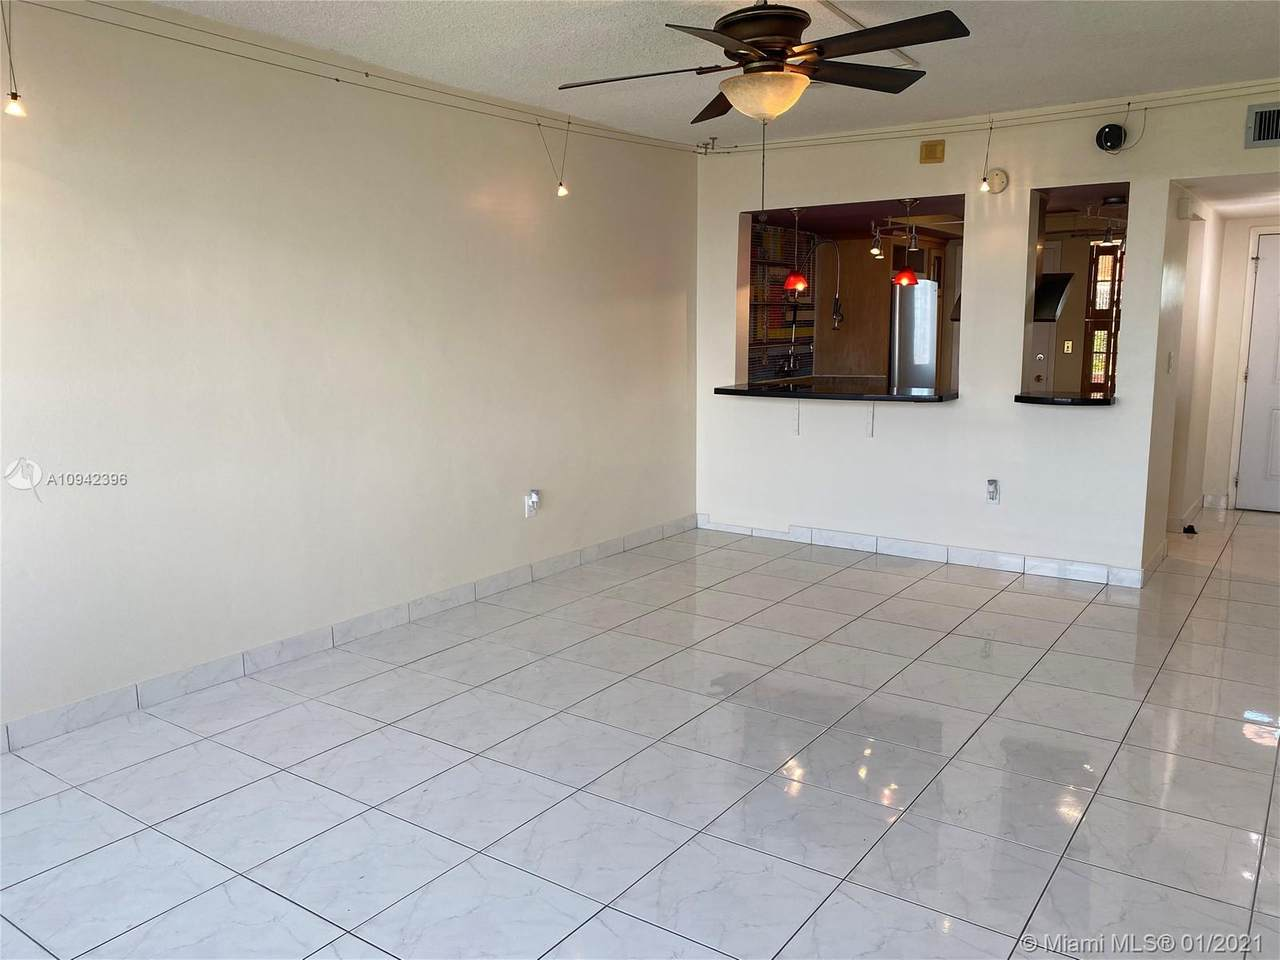 1591 Miami Gardens Dr - Photo 1